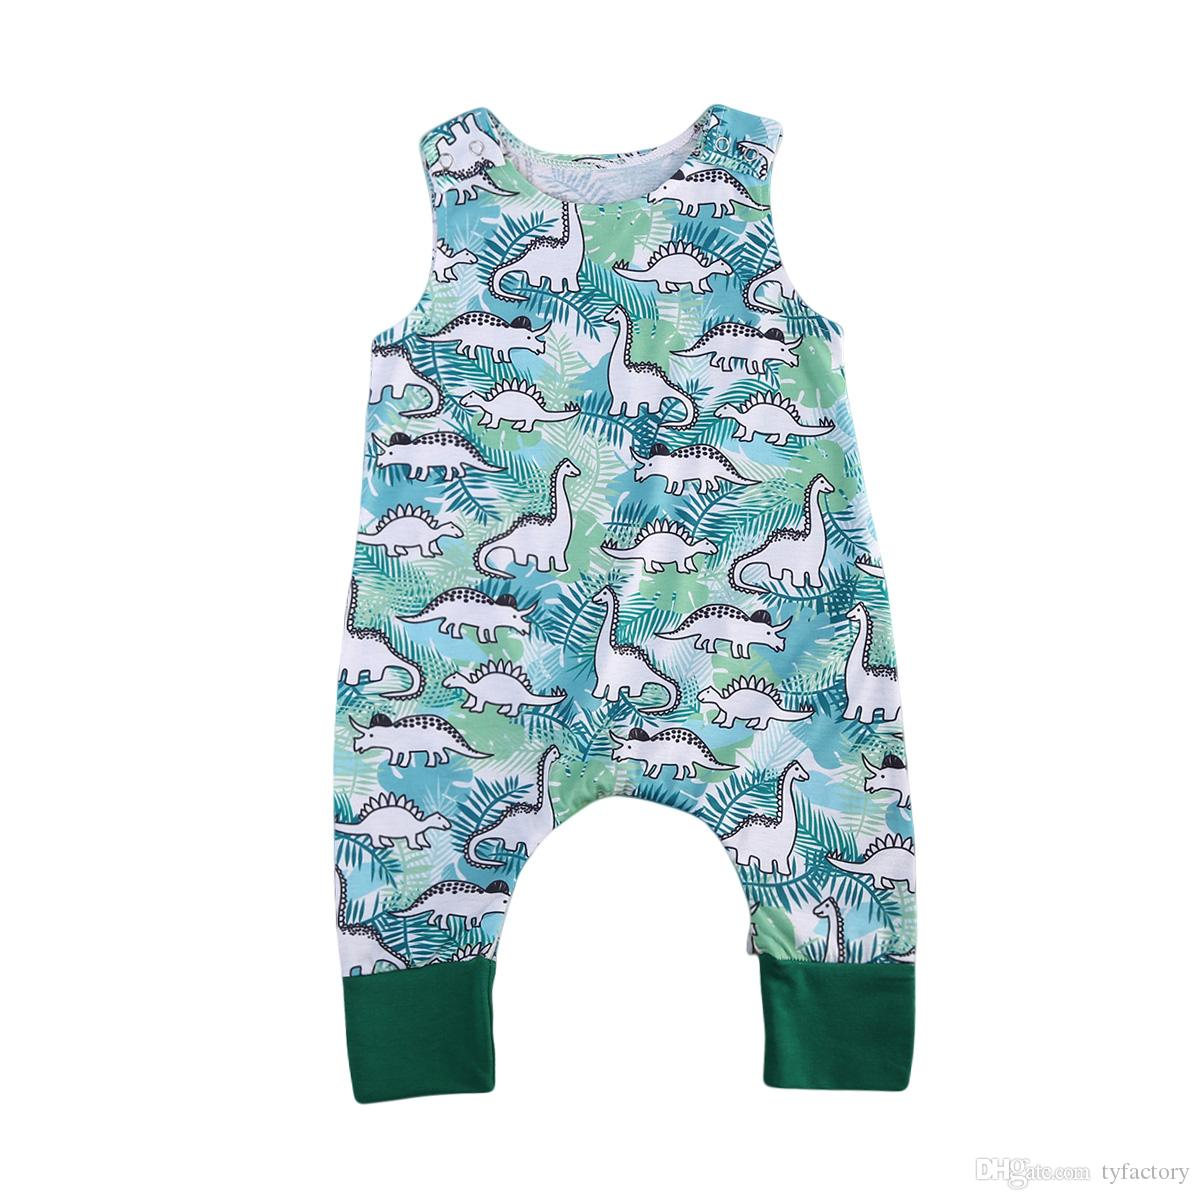 92c6743c5cf1 2019 2018 Newborn Infant Baby Boys Dinosaur Onesies Romper Jumpsuit  Sleeveless Green Kids Outfit Bodysuit Boutique Summer Casual Kid Clothing  From Tyfactory ...